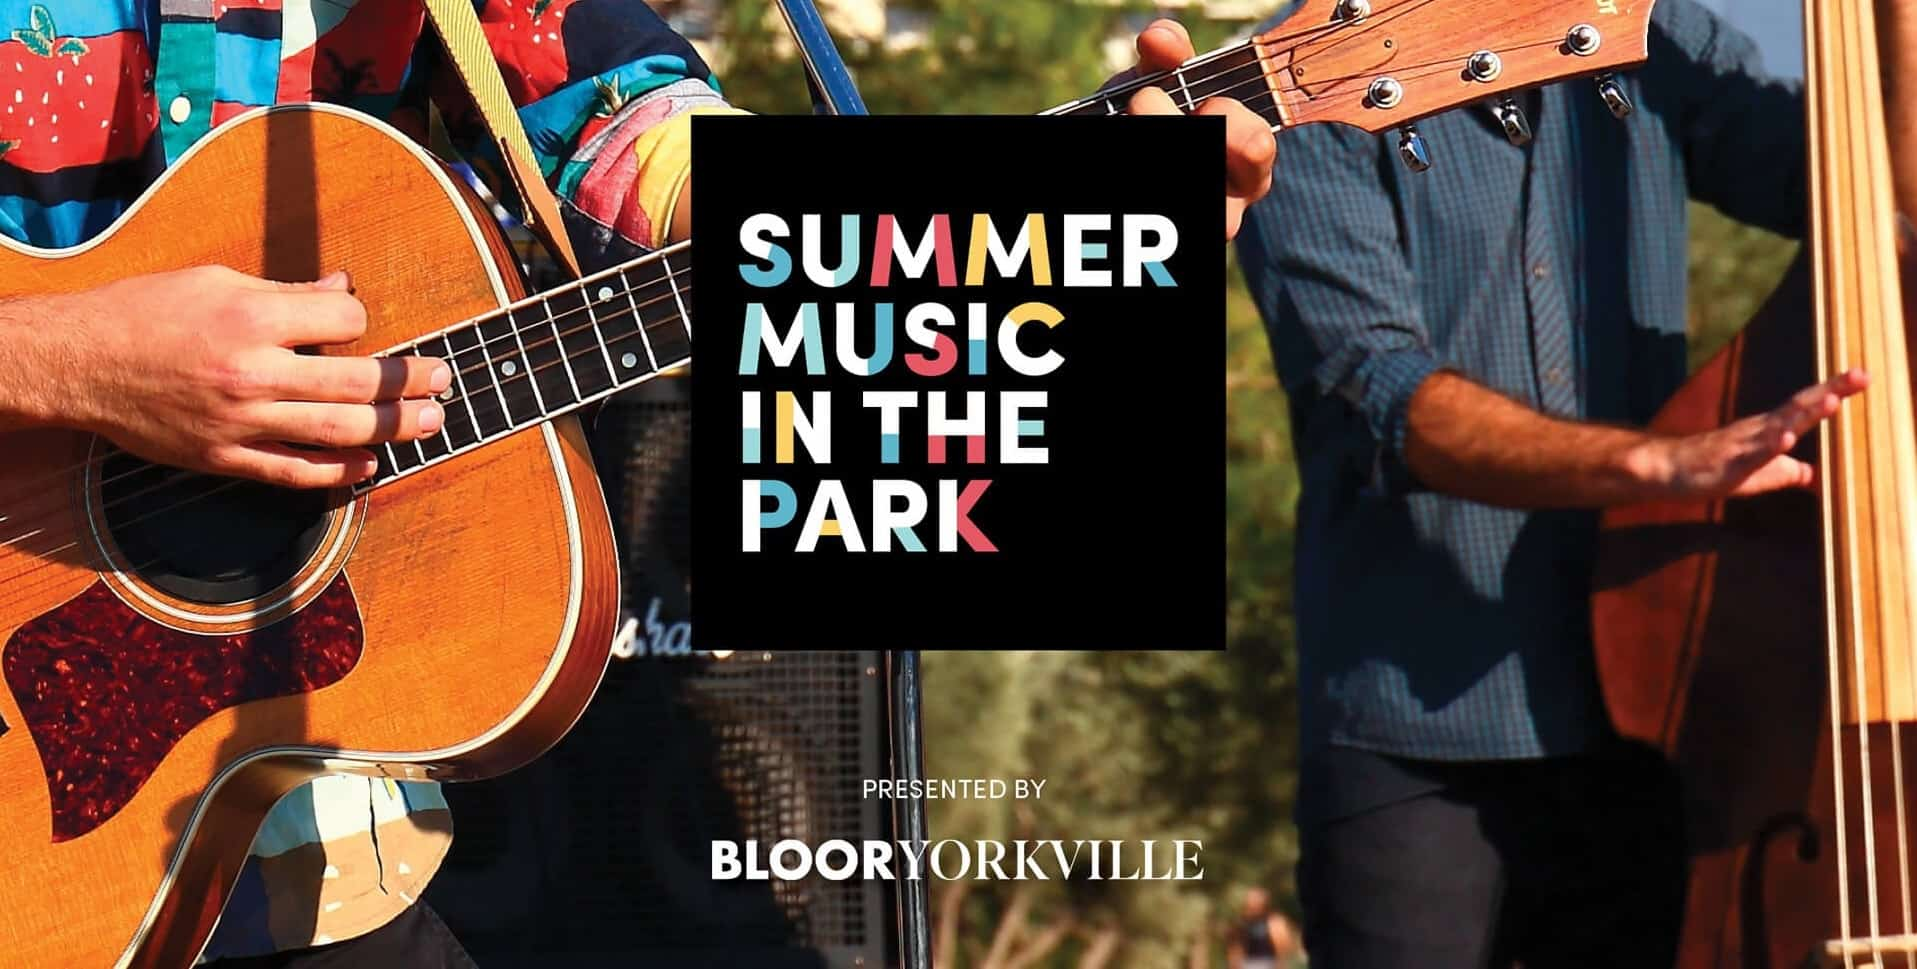 Summer Music in the Park